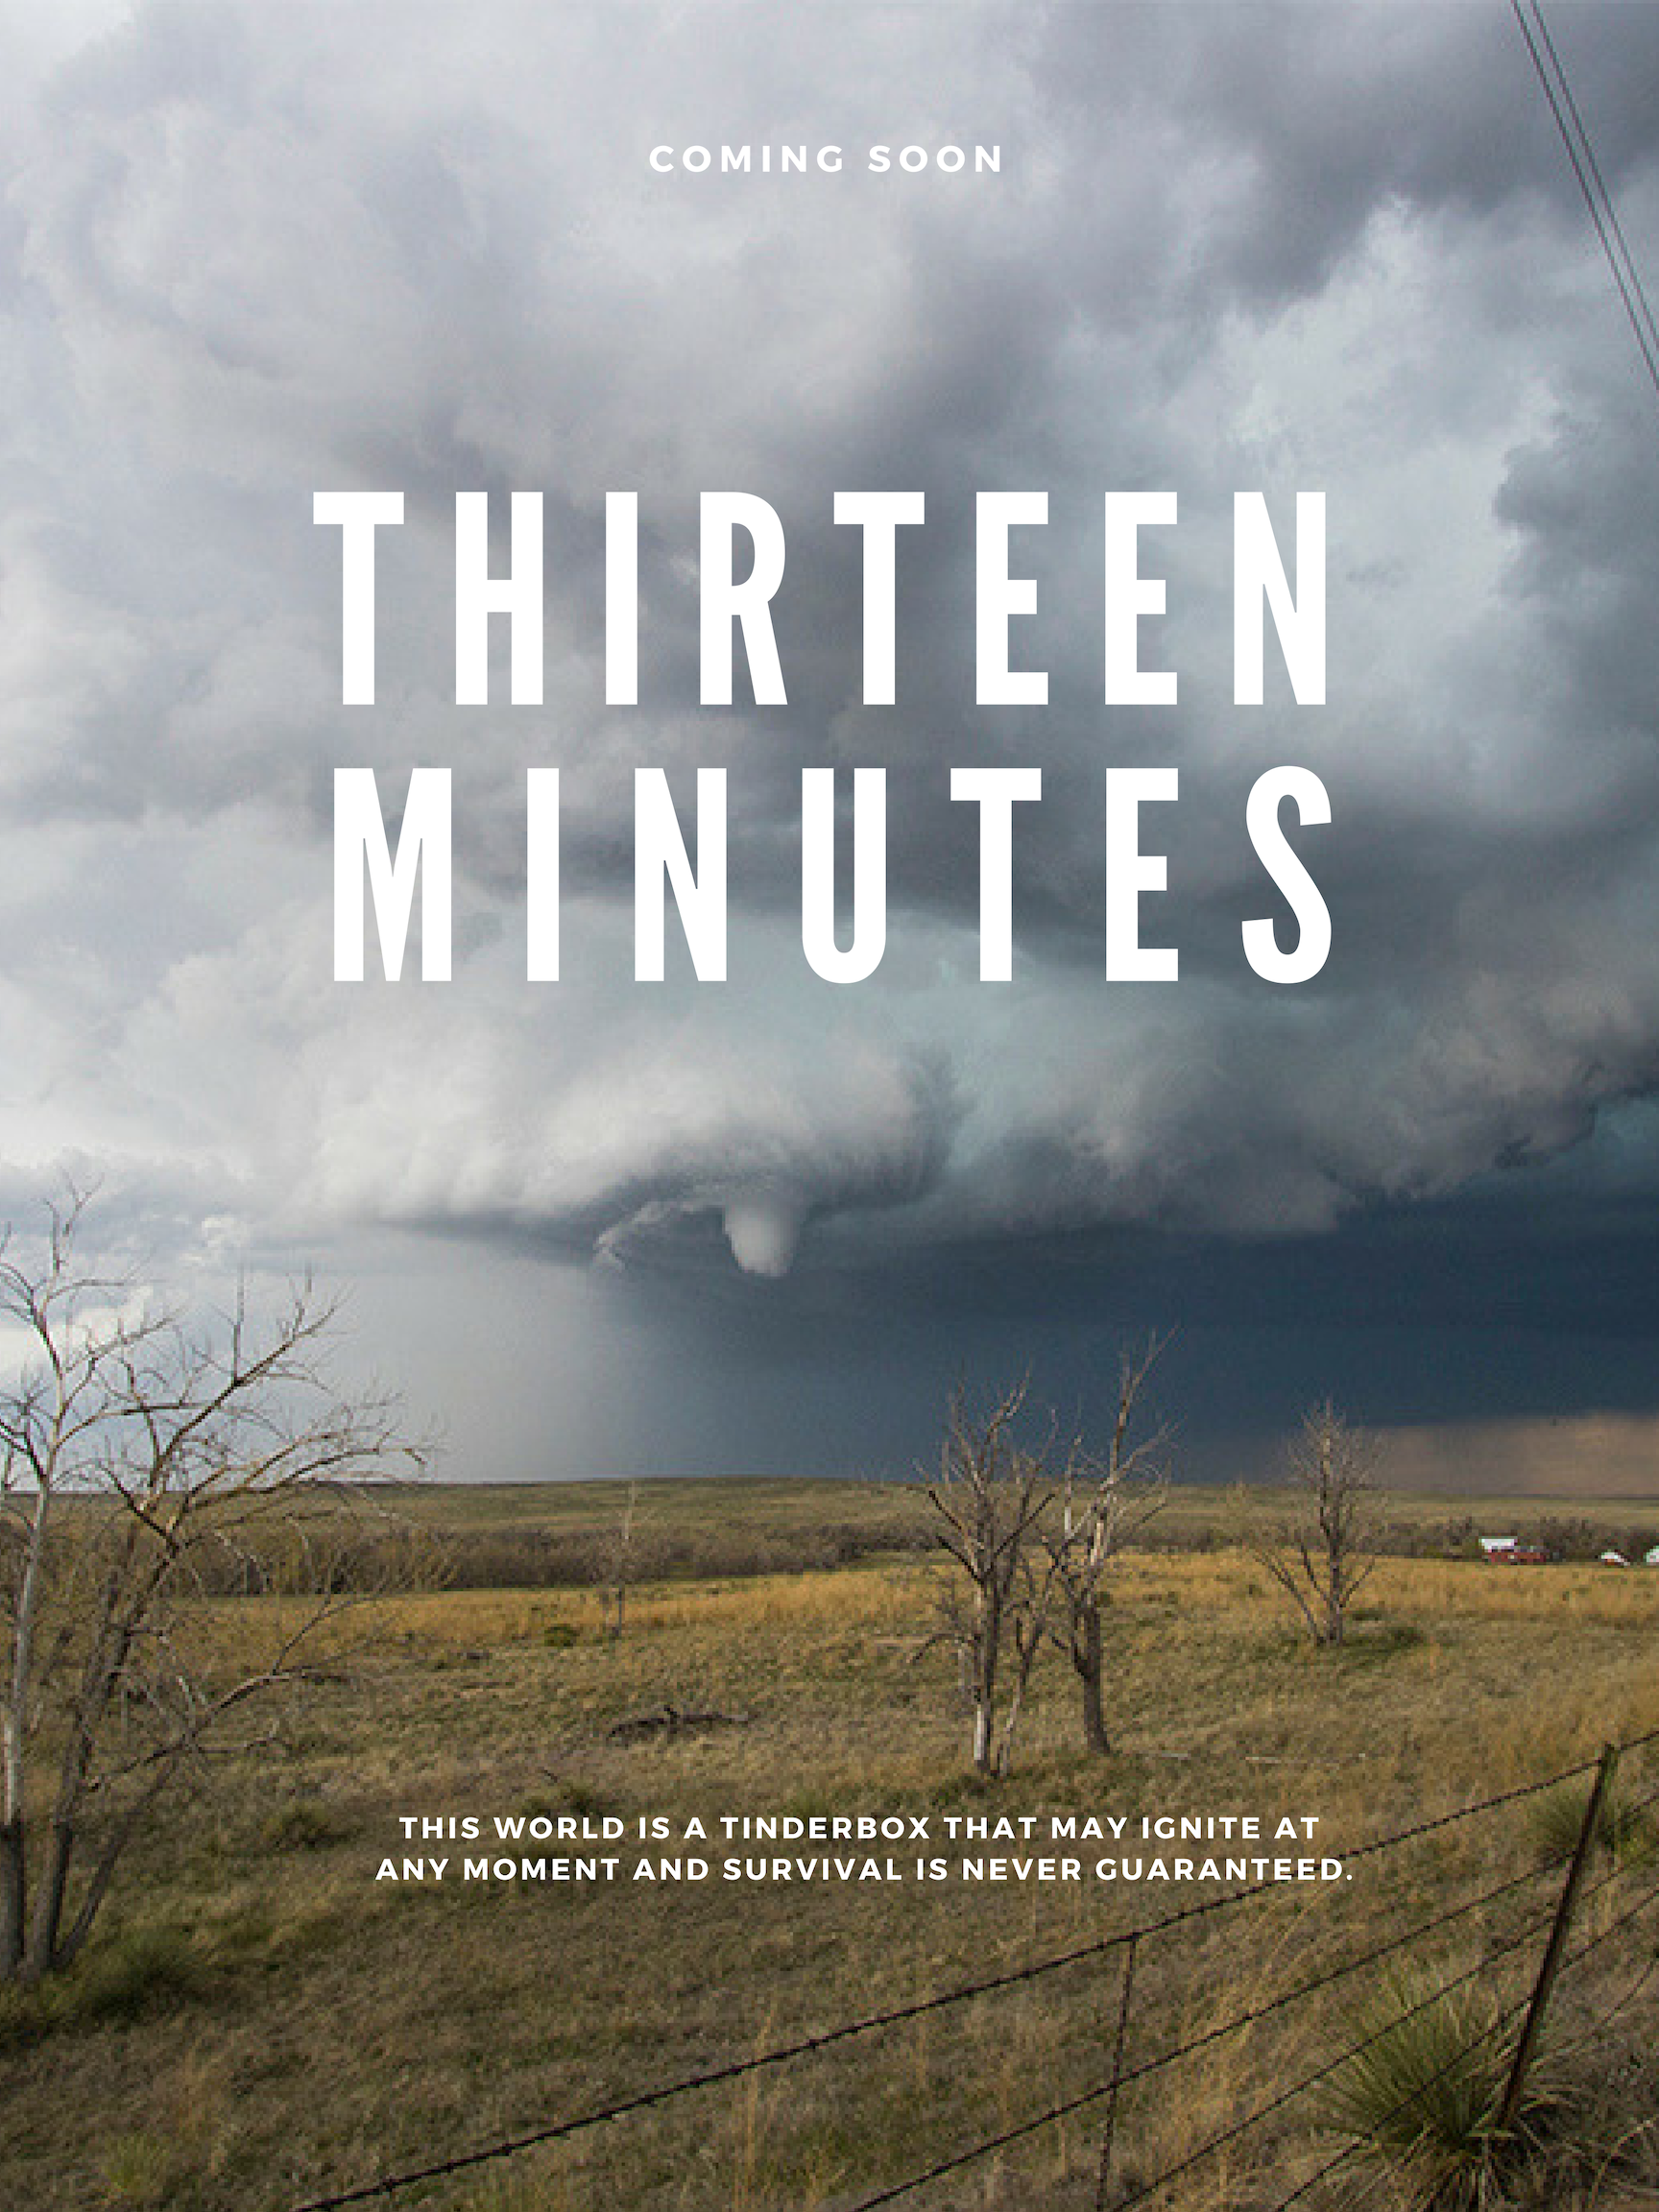 - Four families in a Heartland town are tested in a single day when a tornado hits, forcing paths to cross and redefining the meaning of survival.